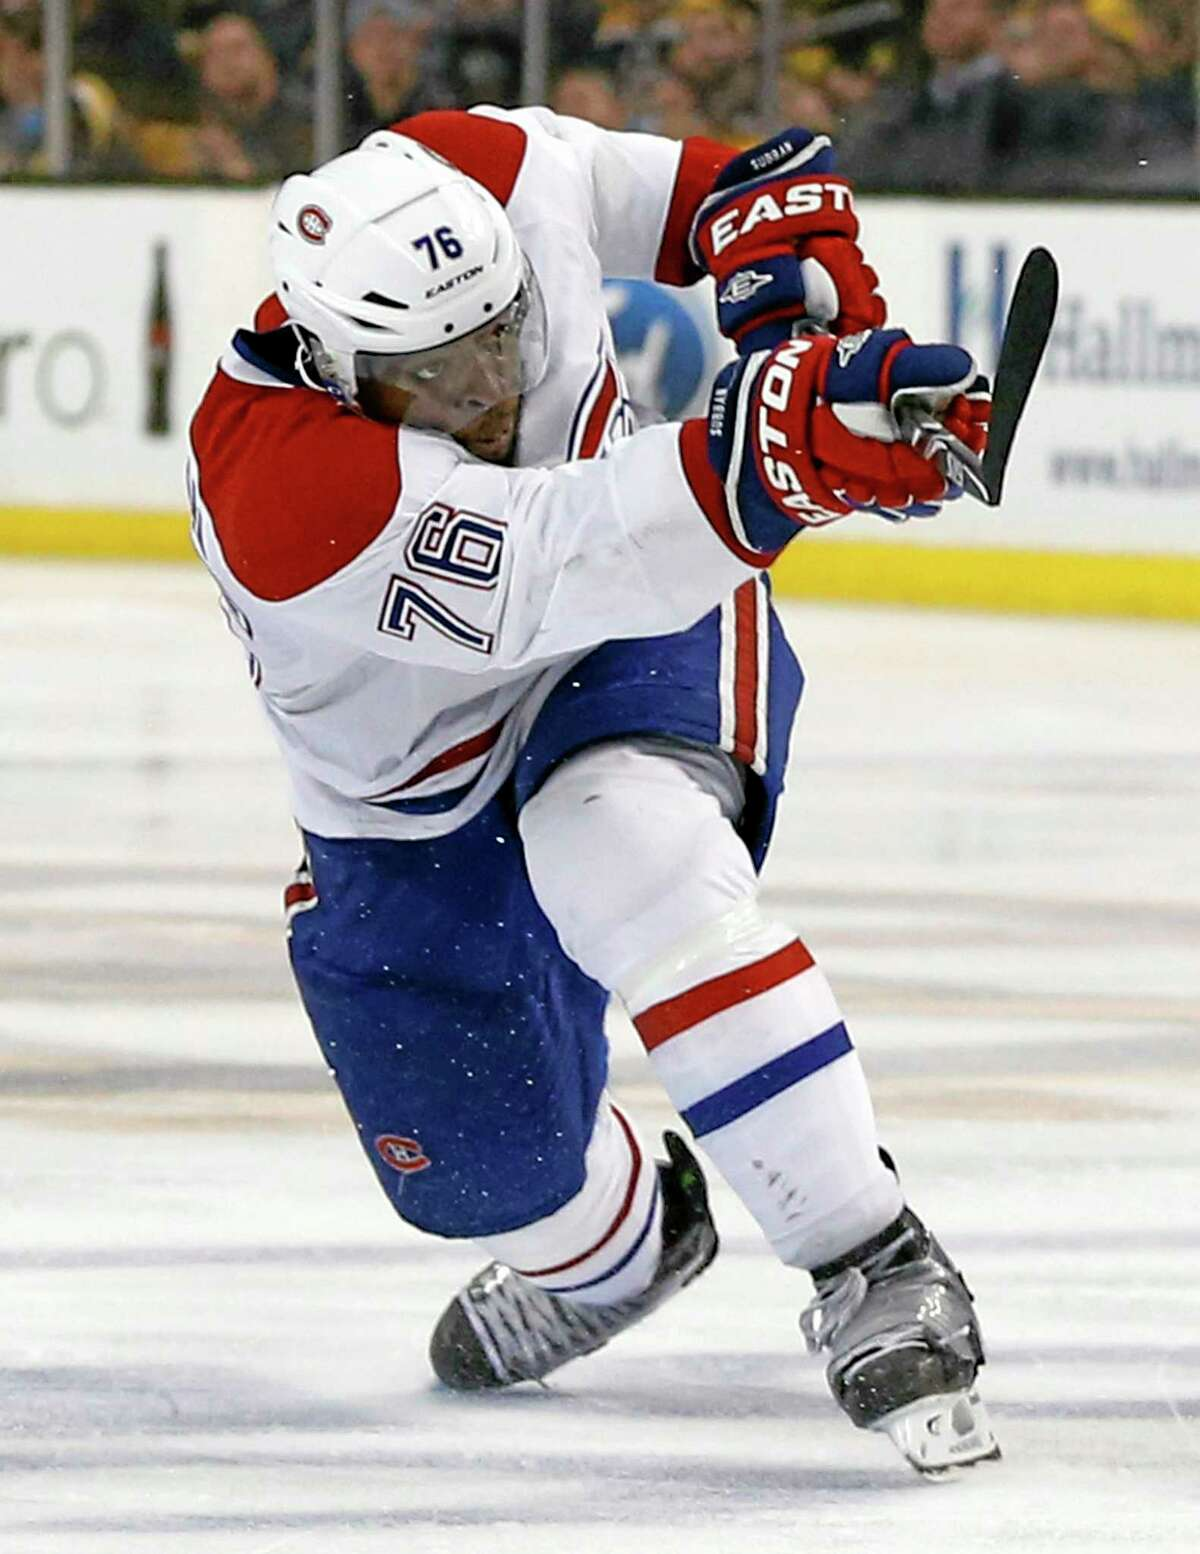 The Montreal Canadiens' P.K. Subban follows through on his game-winning goal in the second overtime period against the Bruins in Boston on Thursday.